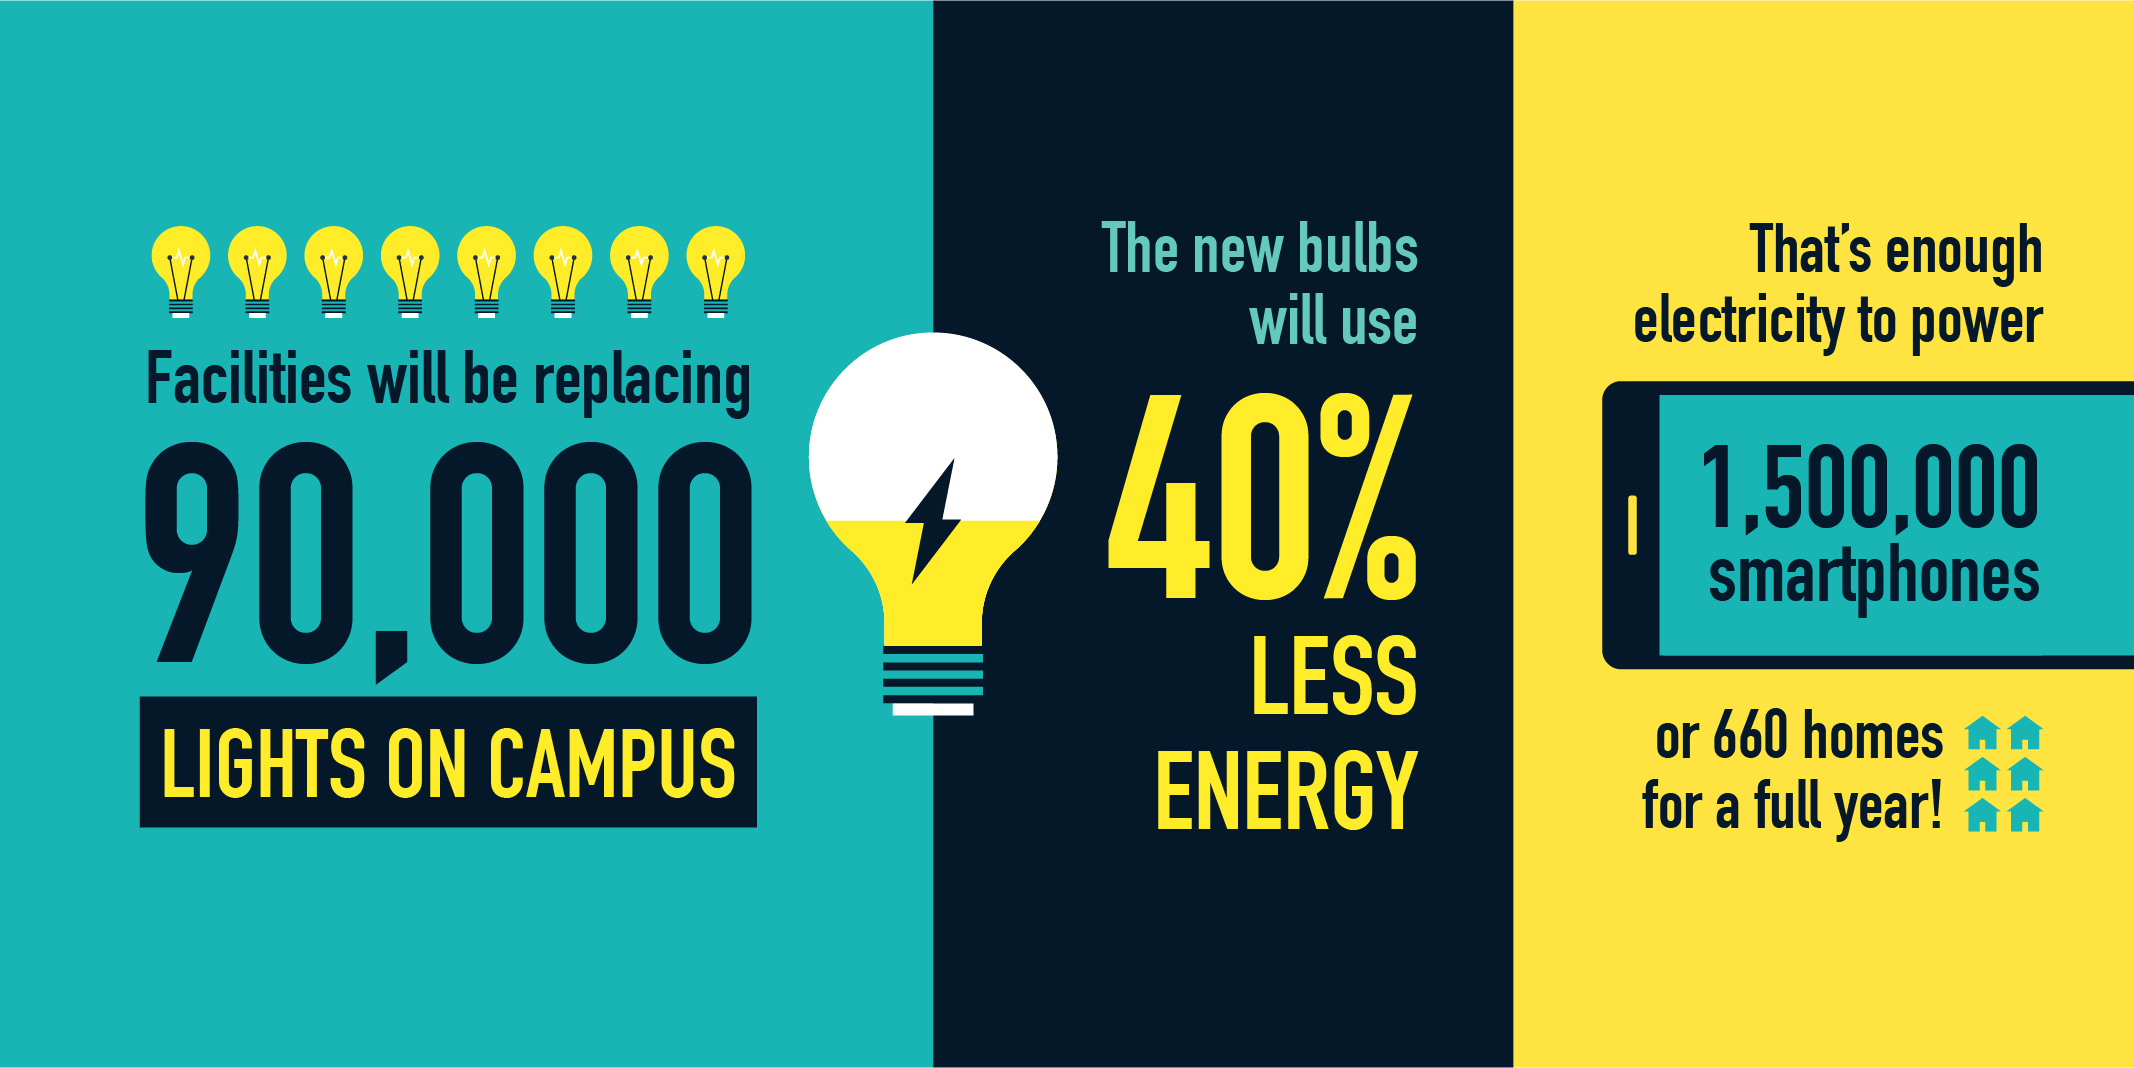 Facilities will be replacing 90,000 lights on campus. The new bulbs will use 40% less energy. That's enough electricity to power 1,500,000 smartphones or 660 homes for a full year!